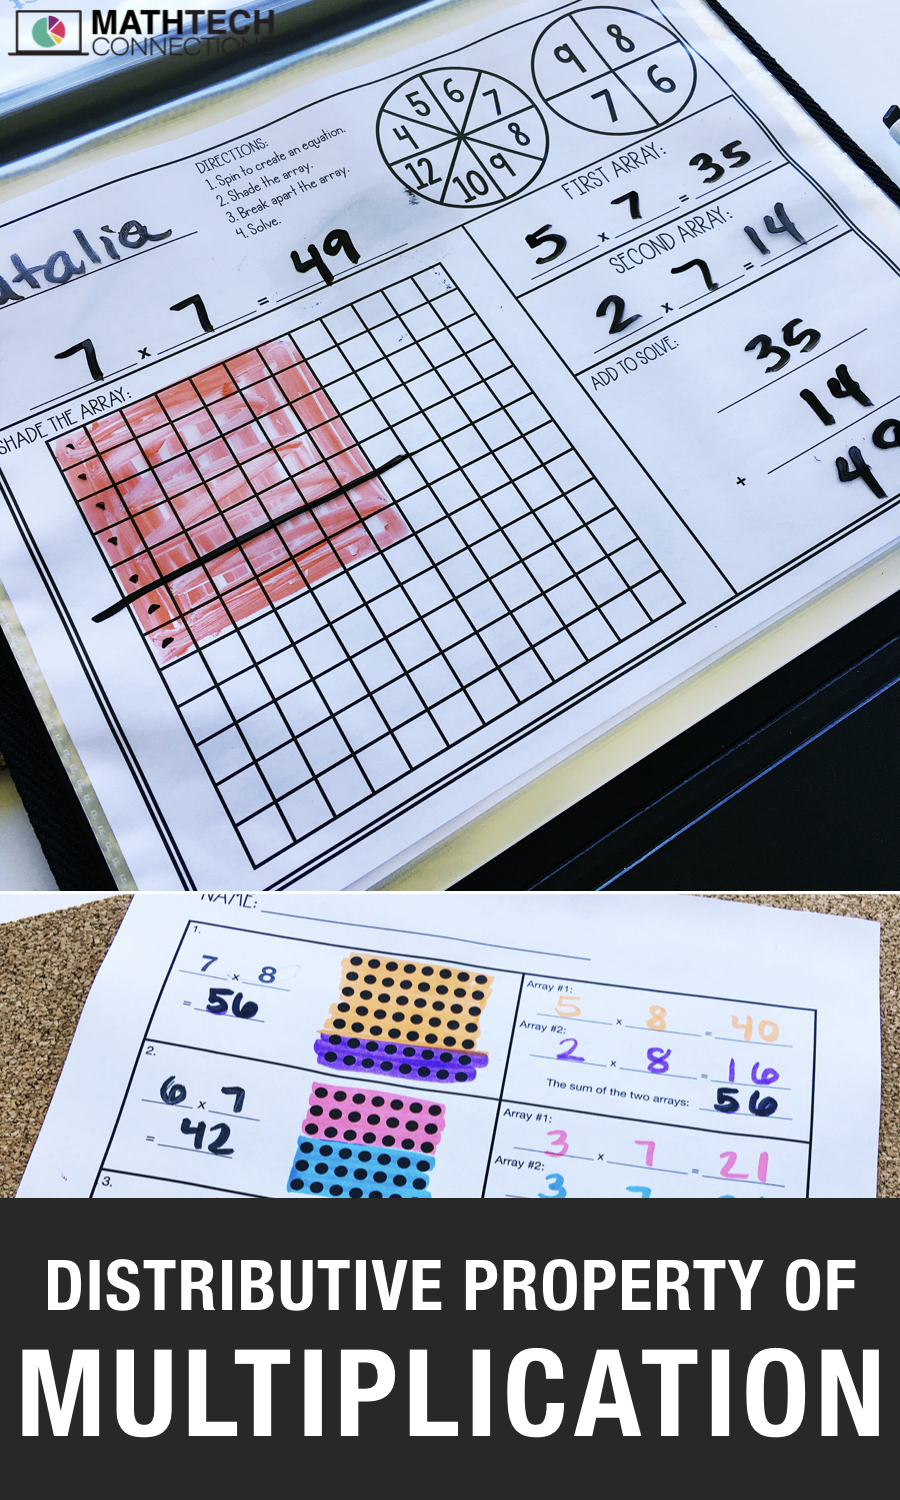 medium resolution of 4 Activities to Review the Distributive Property of Multiplication – Math  Tech Connections